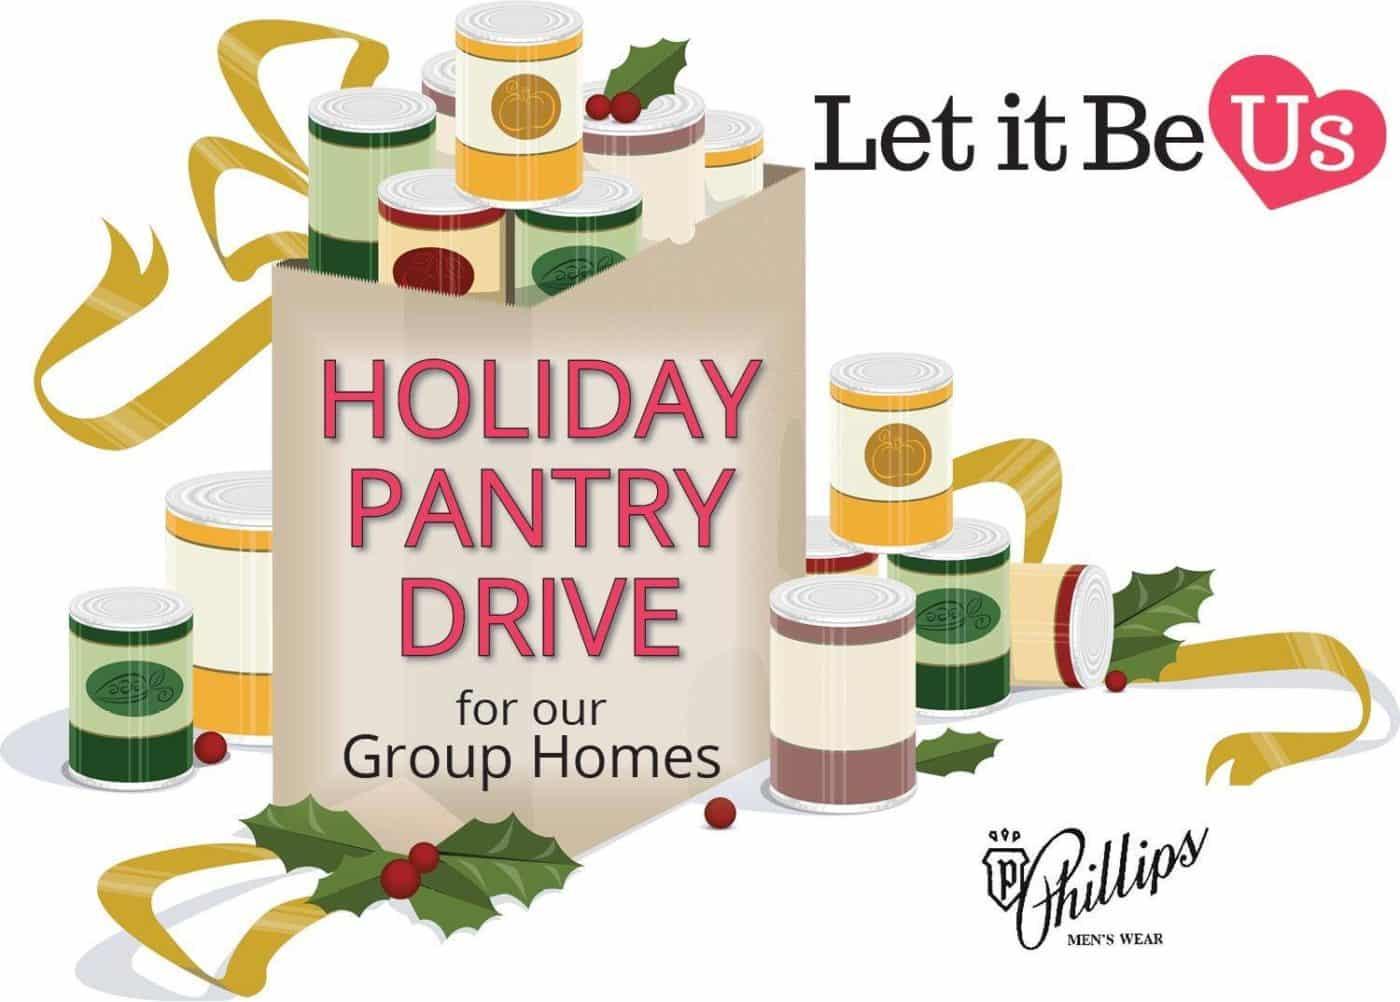 Holiday Pantry Stocking Food Drive for Our Group Homes.